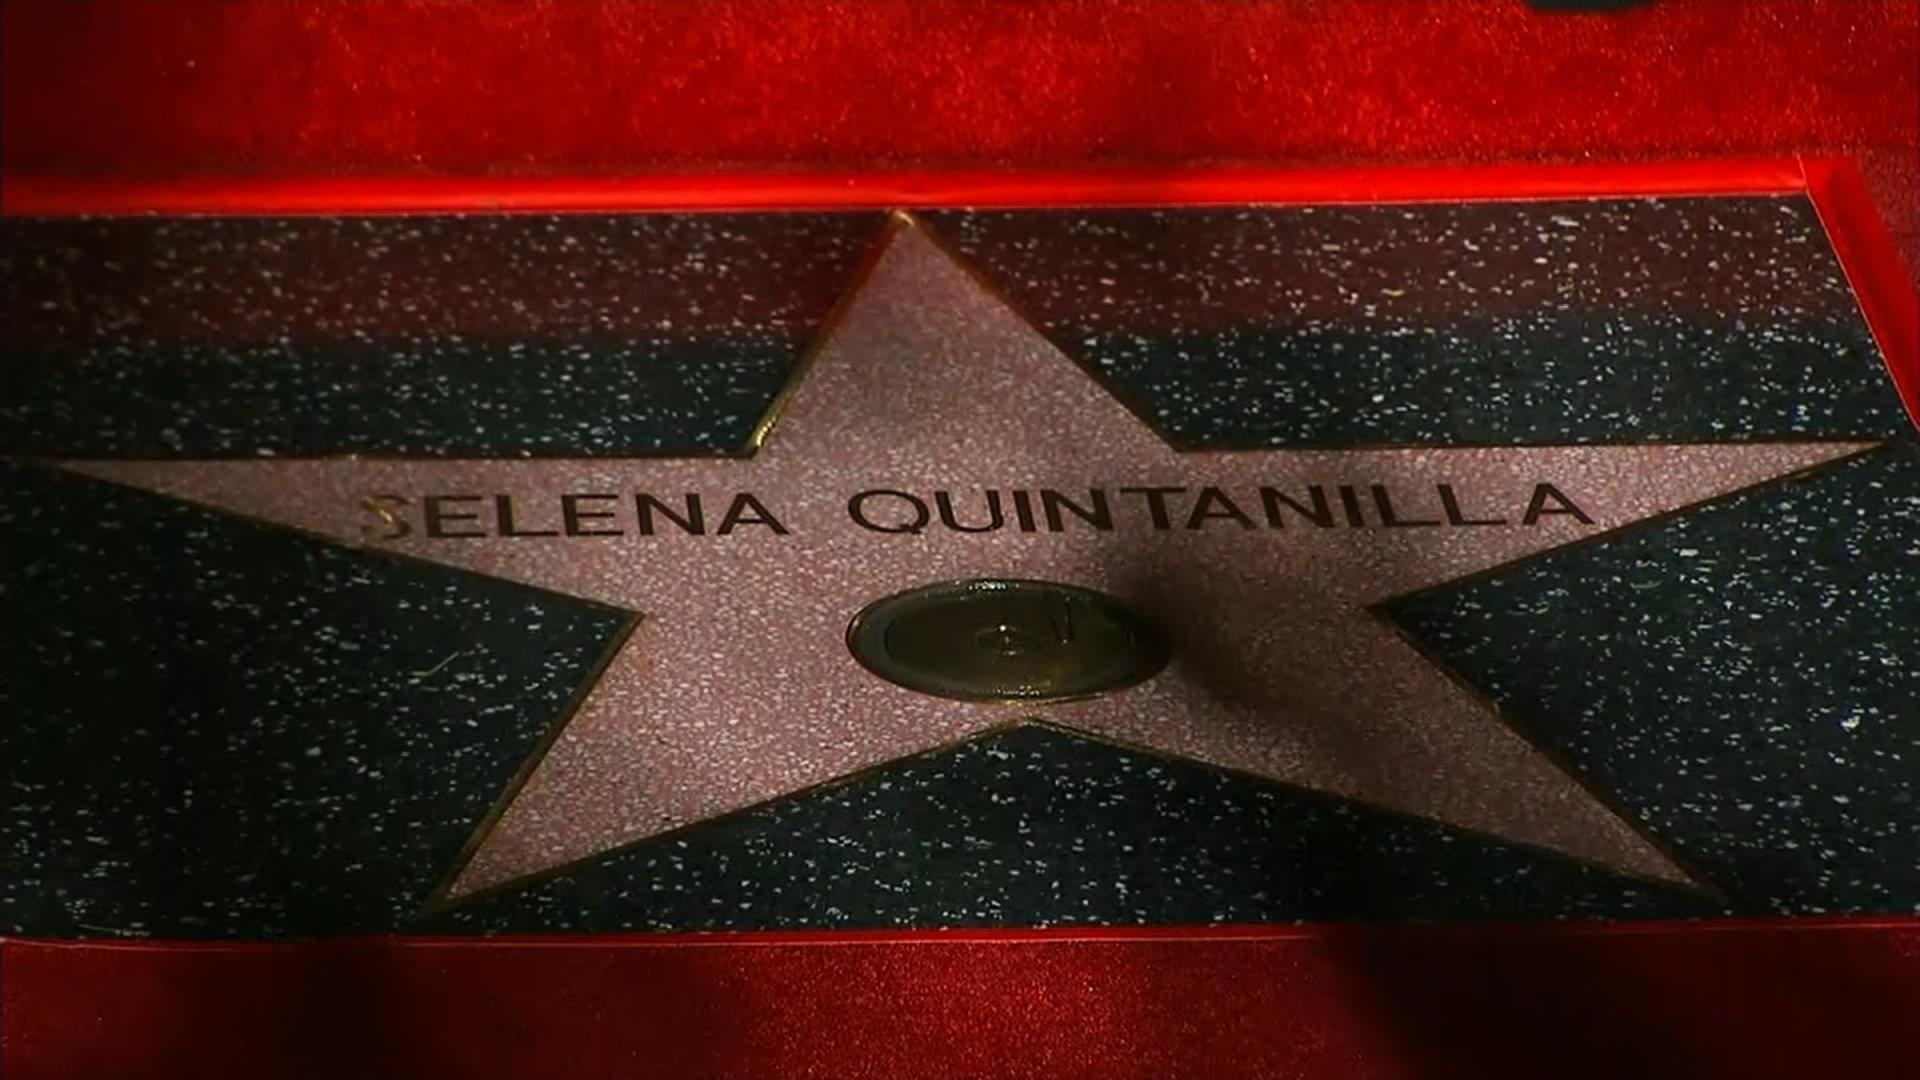 Forever 21 Launches White Rose Collection Honoring Selena Quintanilla